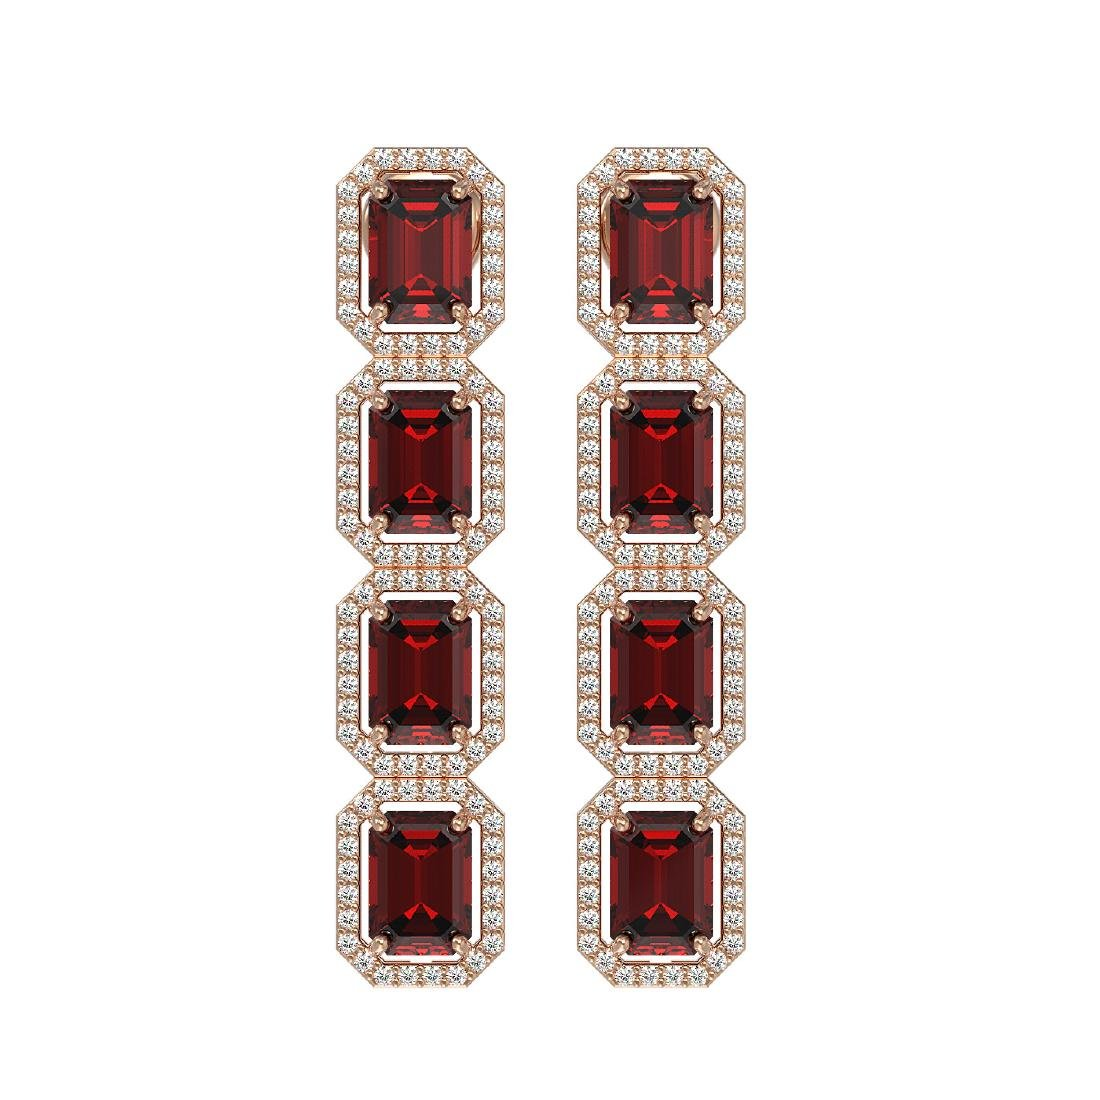 12.73 CTW Garnet & Diamond Halo Earrings 10K Rose Gold